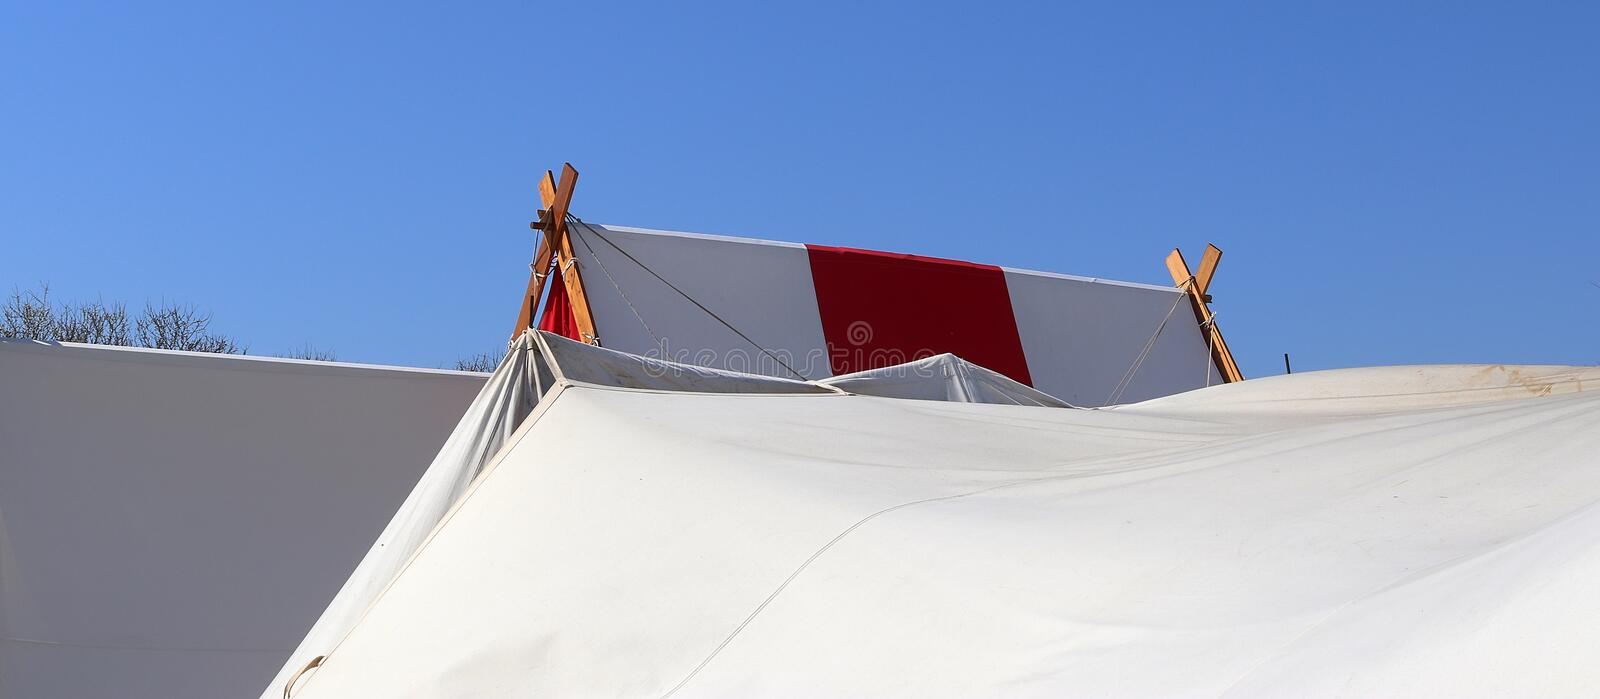 Old vikings tent made of cloth and wood in front of a blue sky royalty free stock photography